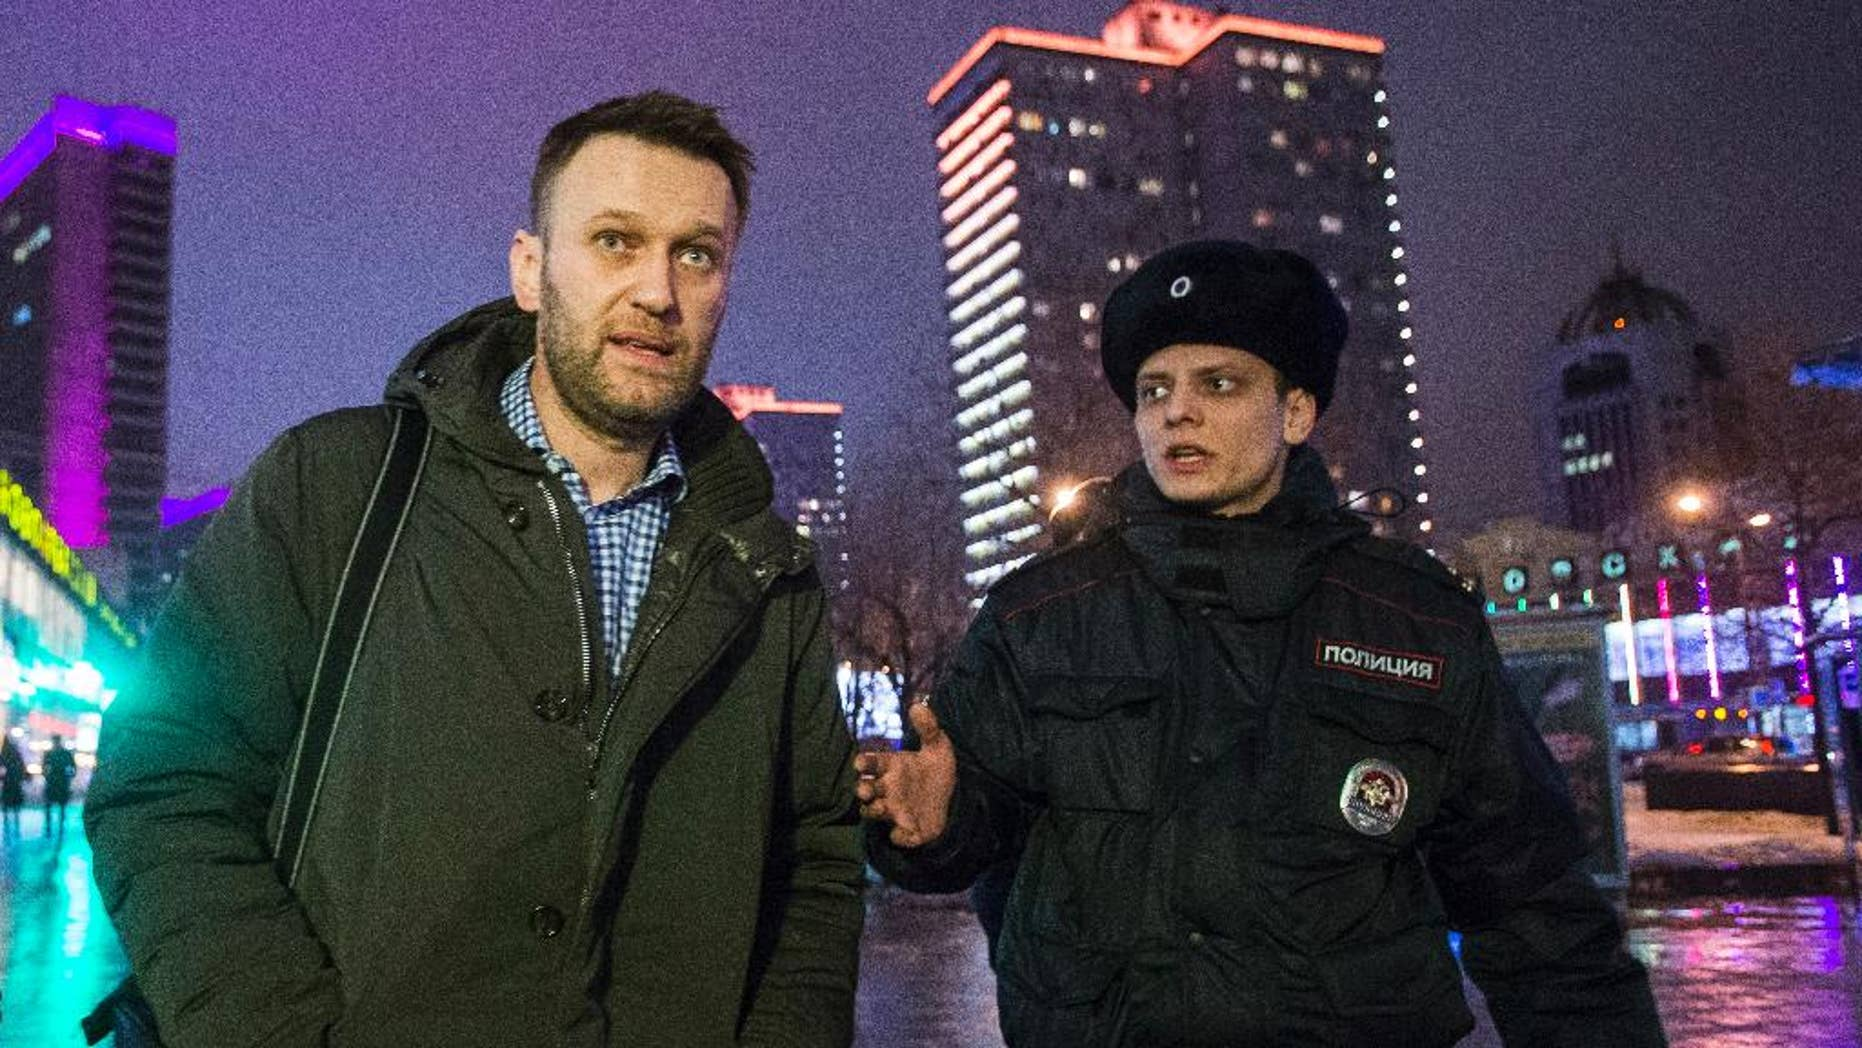 Russian opposition activist and anti-corruption crusader Alexei Navalny, left, is detained by police after defying his house arrest to speak on Radio Echo Moskvy in Moscow, Wednesday, Jan. 14, 2015. Leading Russian opposition figure Alexei Navalny says he has paid the state for the electronic bracelet that he cut off to protest his house arrest. Navalny was convicted in late December of fraud and given a suspended sentence. But the court said he must remain under house arrest until his appeals are exhausted. (AP Photo/Pavel Golovkin)